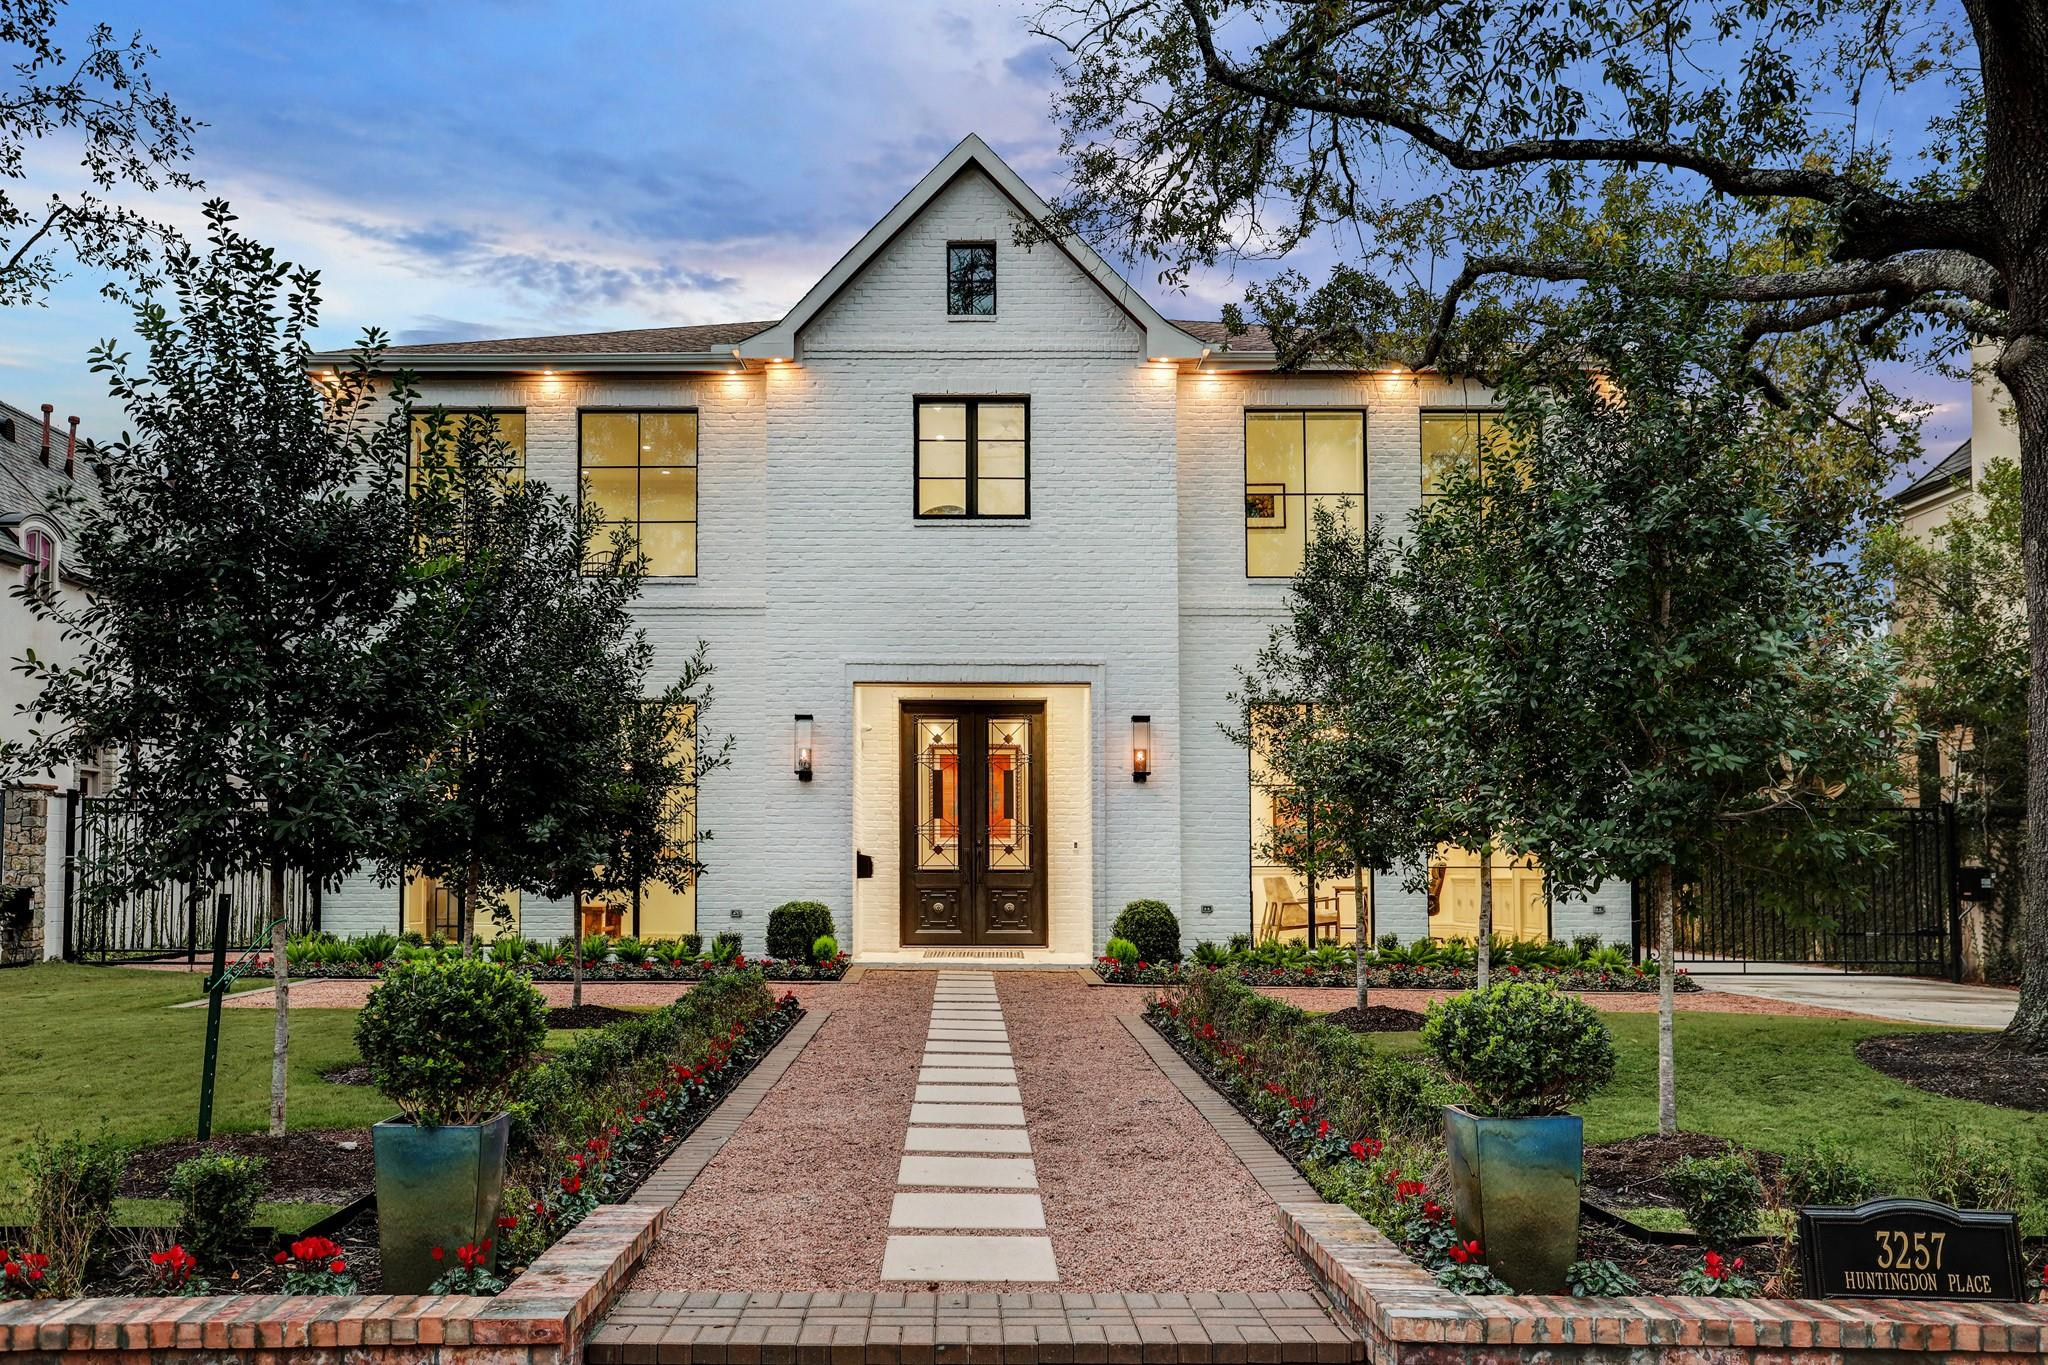 3257 Huntingdon Place Property Photo - Houston, TX real estate listing